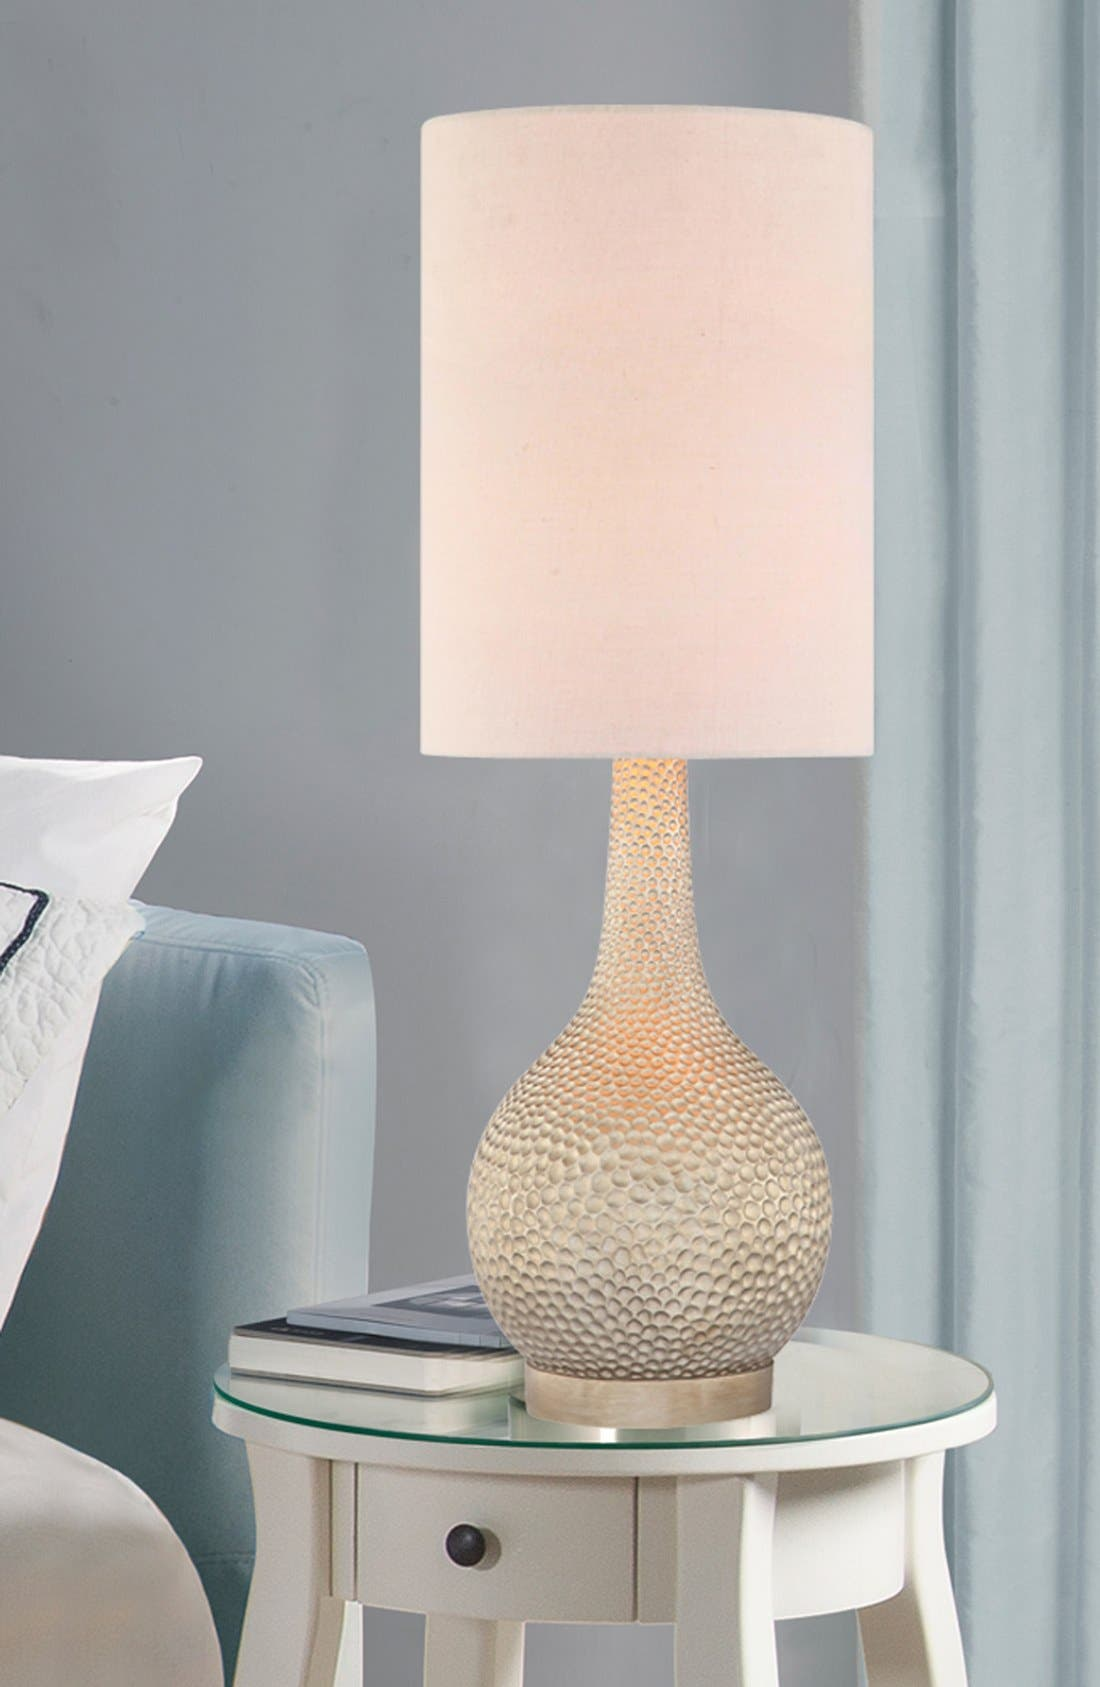 'Champagne Silver' Hammered Metal Table Lamp,                             Alternate thumbnail 2, color,                             Champagne Silver